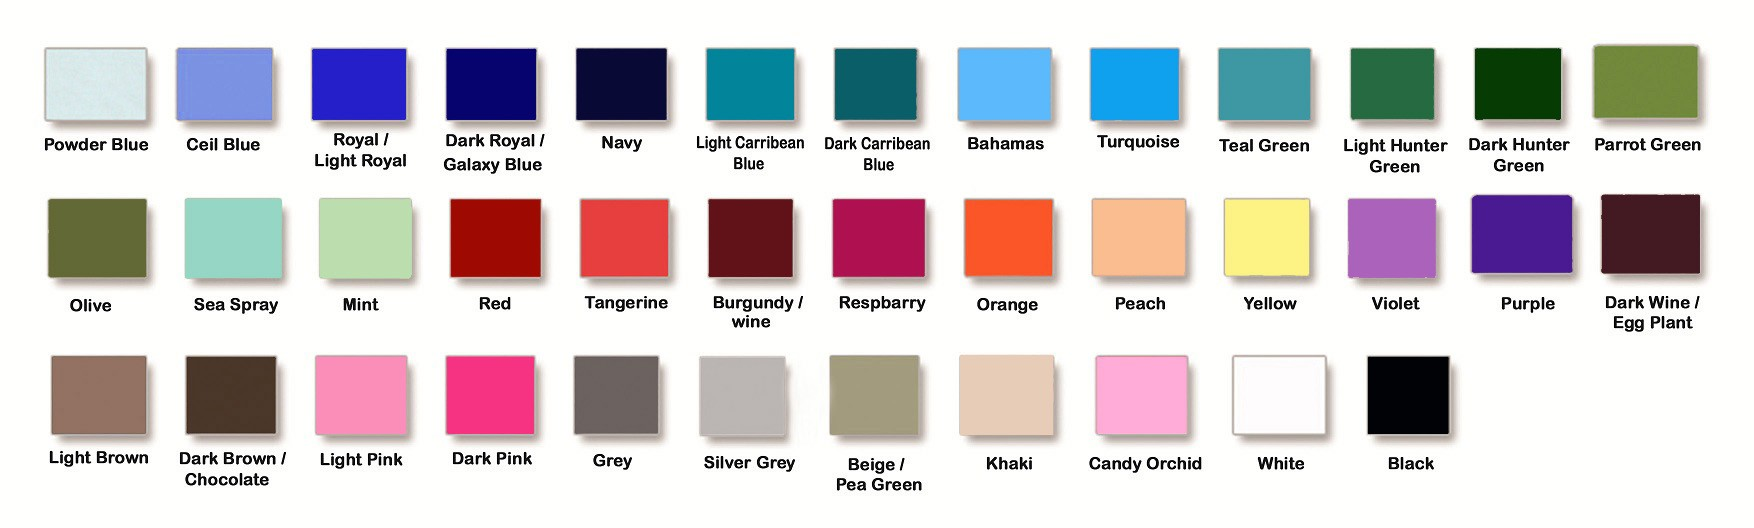 poplin color swatches